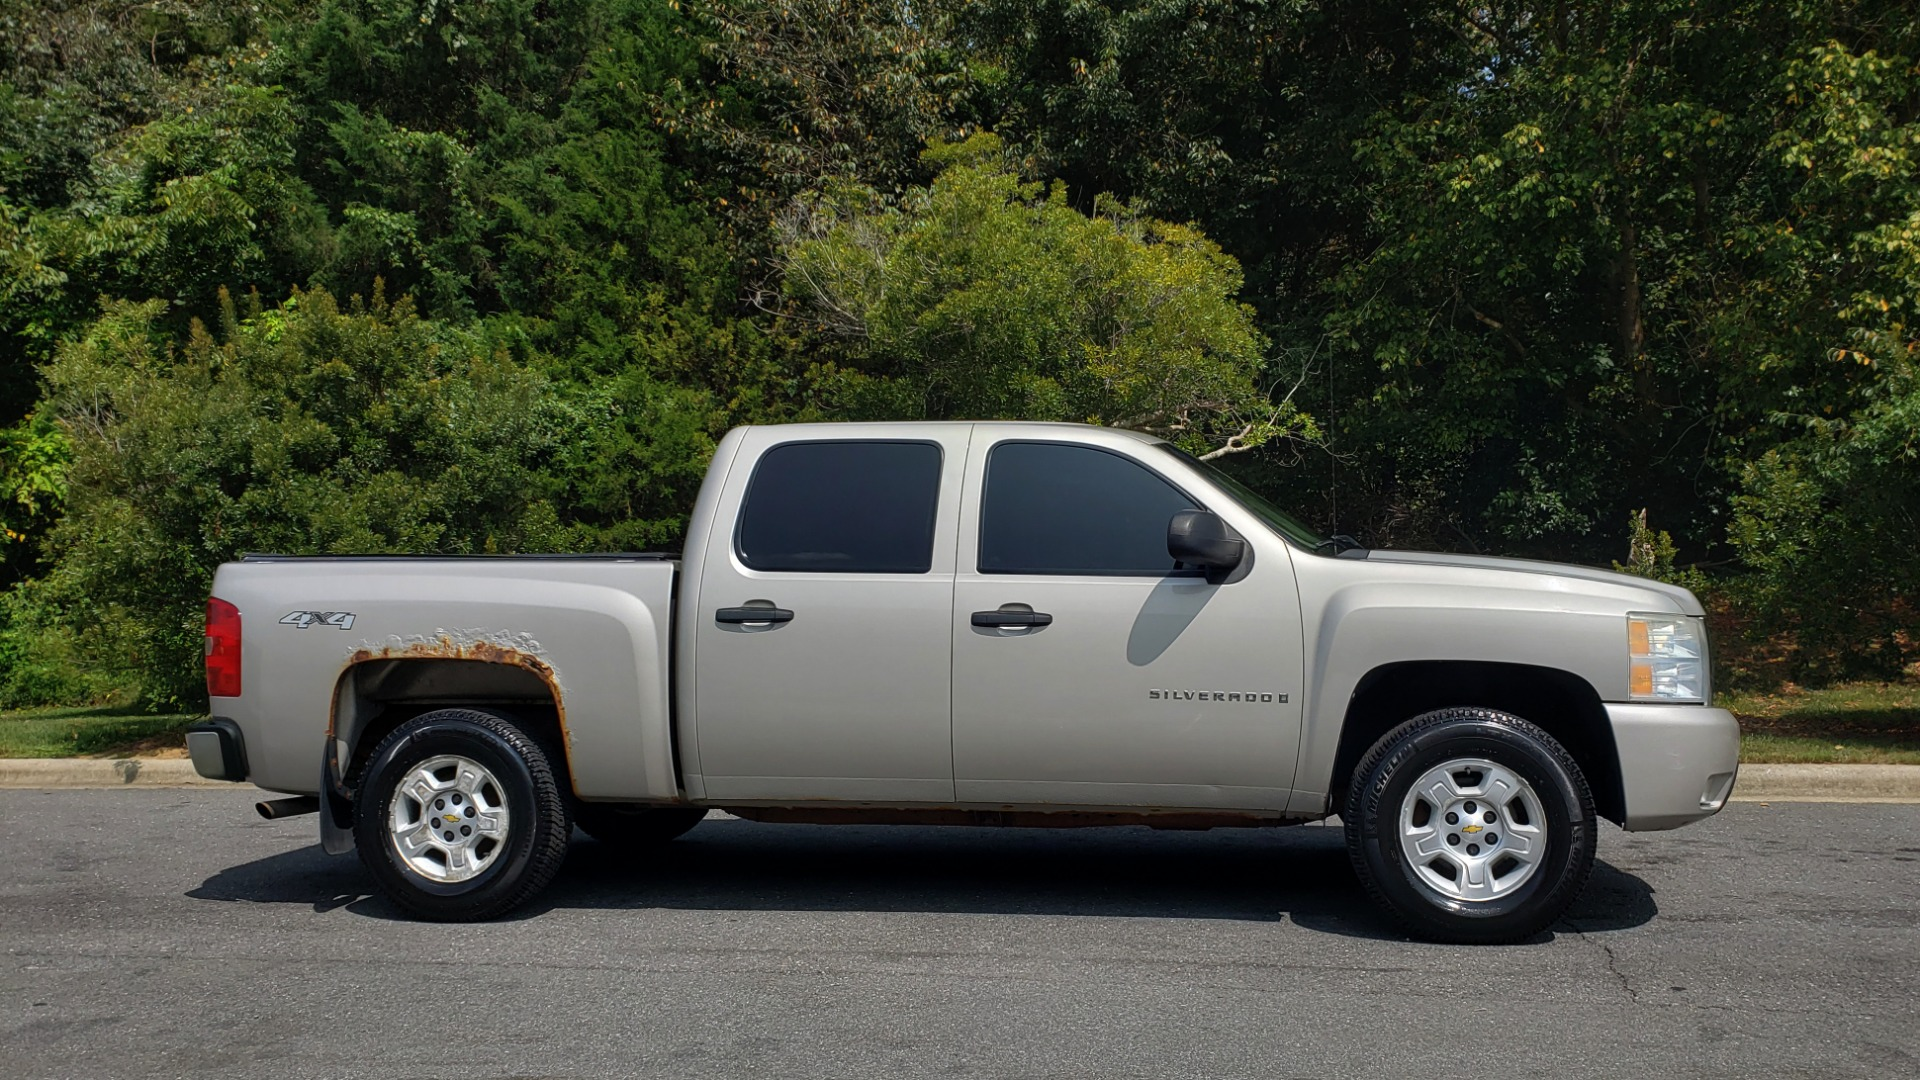 Used 2009 Chevrolet SILVERADO 1500 LT / CREWCAB / 5.3L V8 / 4WD / TRAILER PKG / REARVIEW for sale $10,595 at Formula Imports in Charlotte NC 28227 5